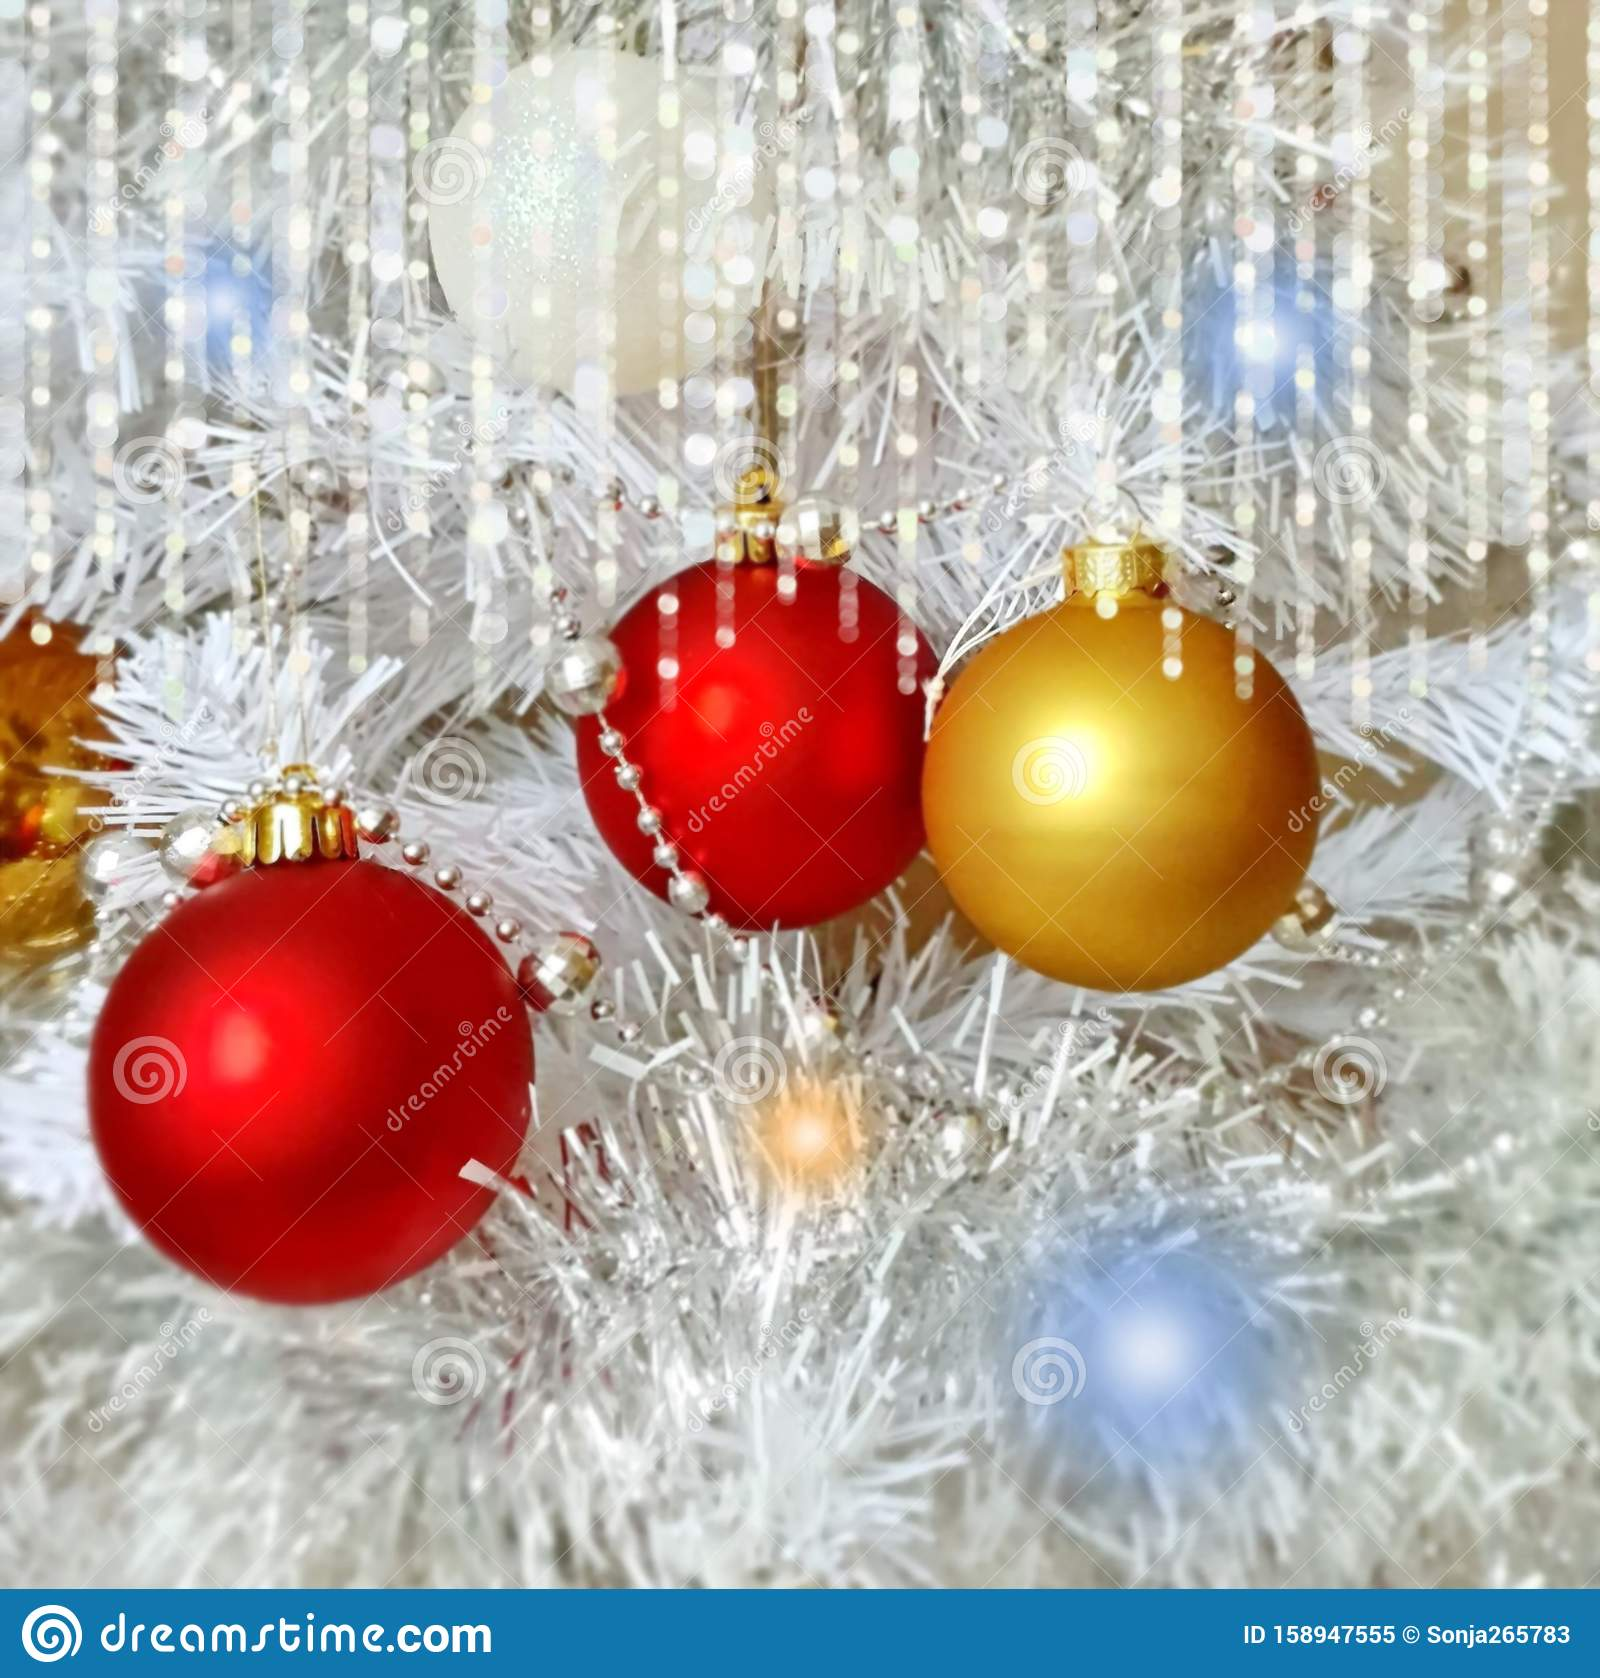 christmas wallpaper holiday white gold silver red green balls snowflakes light decoration new year blurry lights back modern 158947555